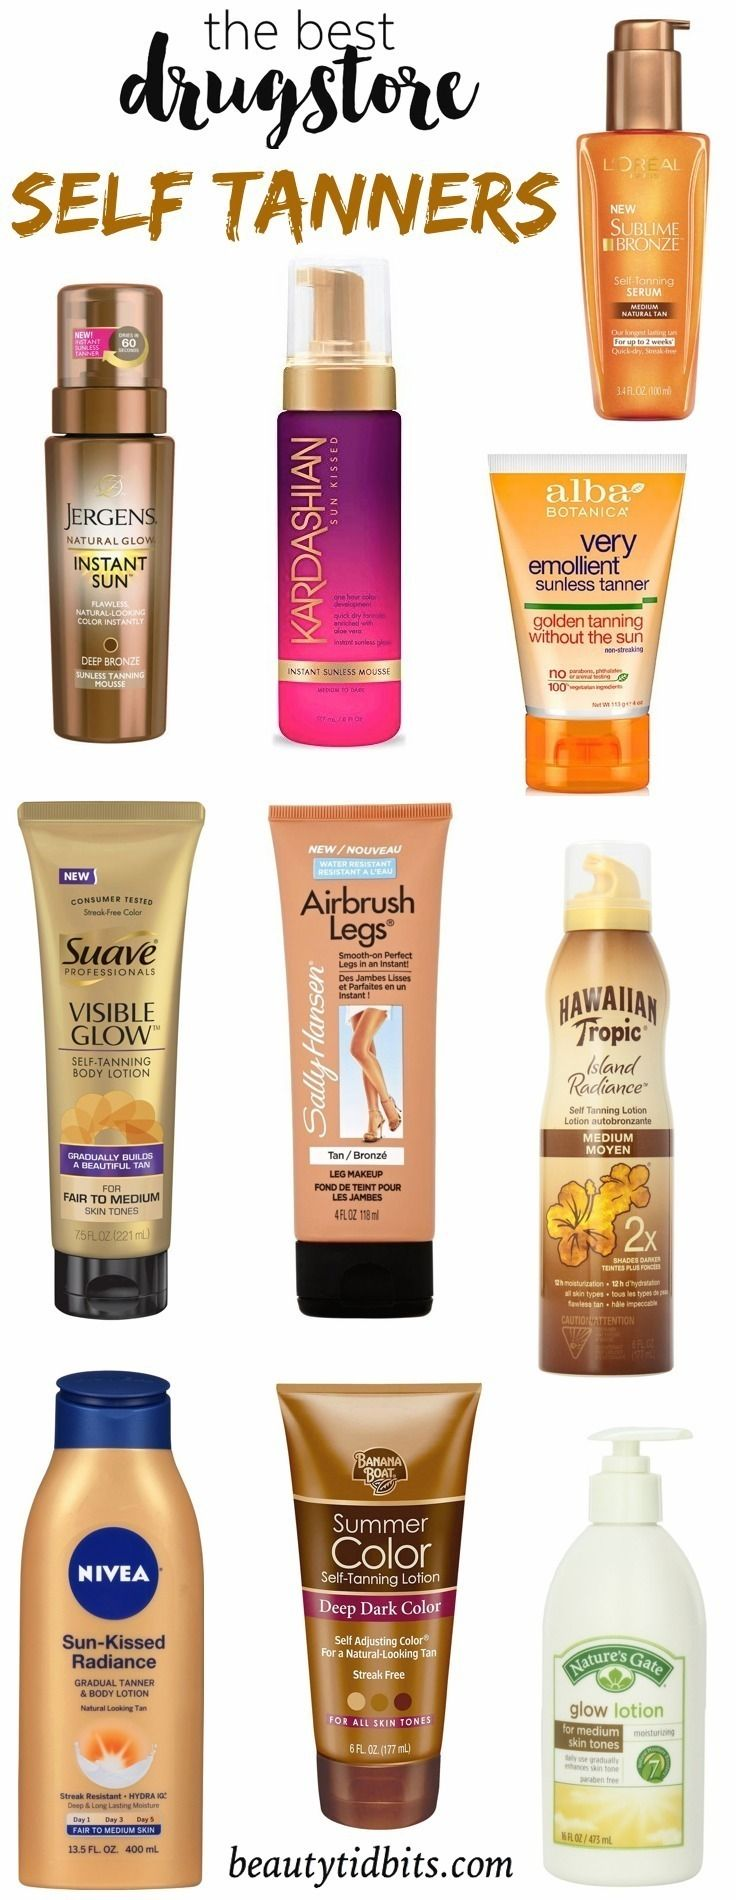 Get Glowing! Best Drugstore Self-Tanners